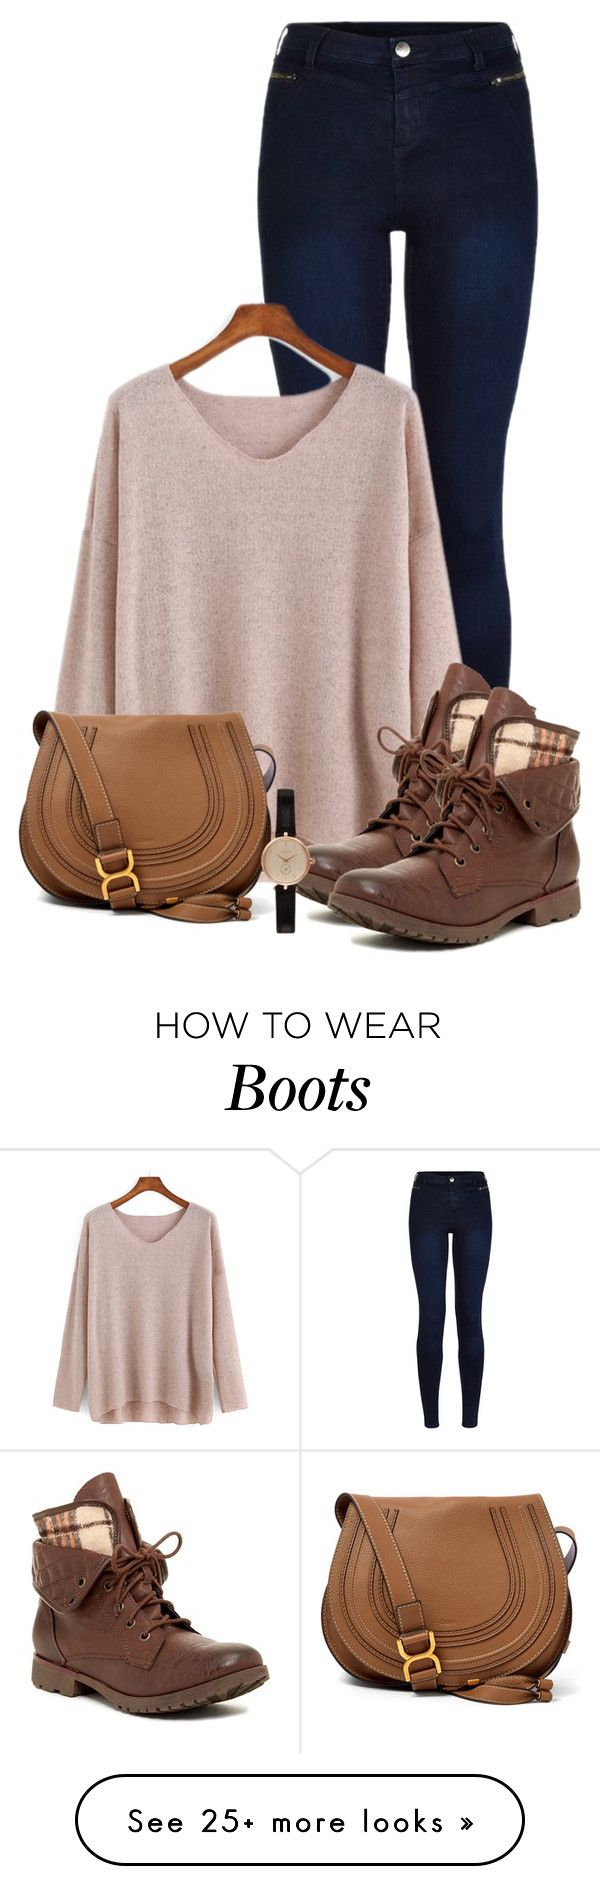 """""""Combat Boots"""" by queenmilliefaith on Polyvore featuring Urban Bliss, Rock & Candy, Chloé and Barbour"""